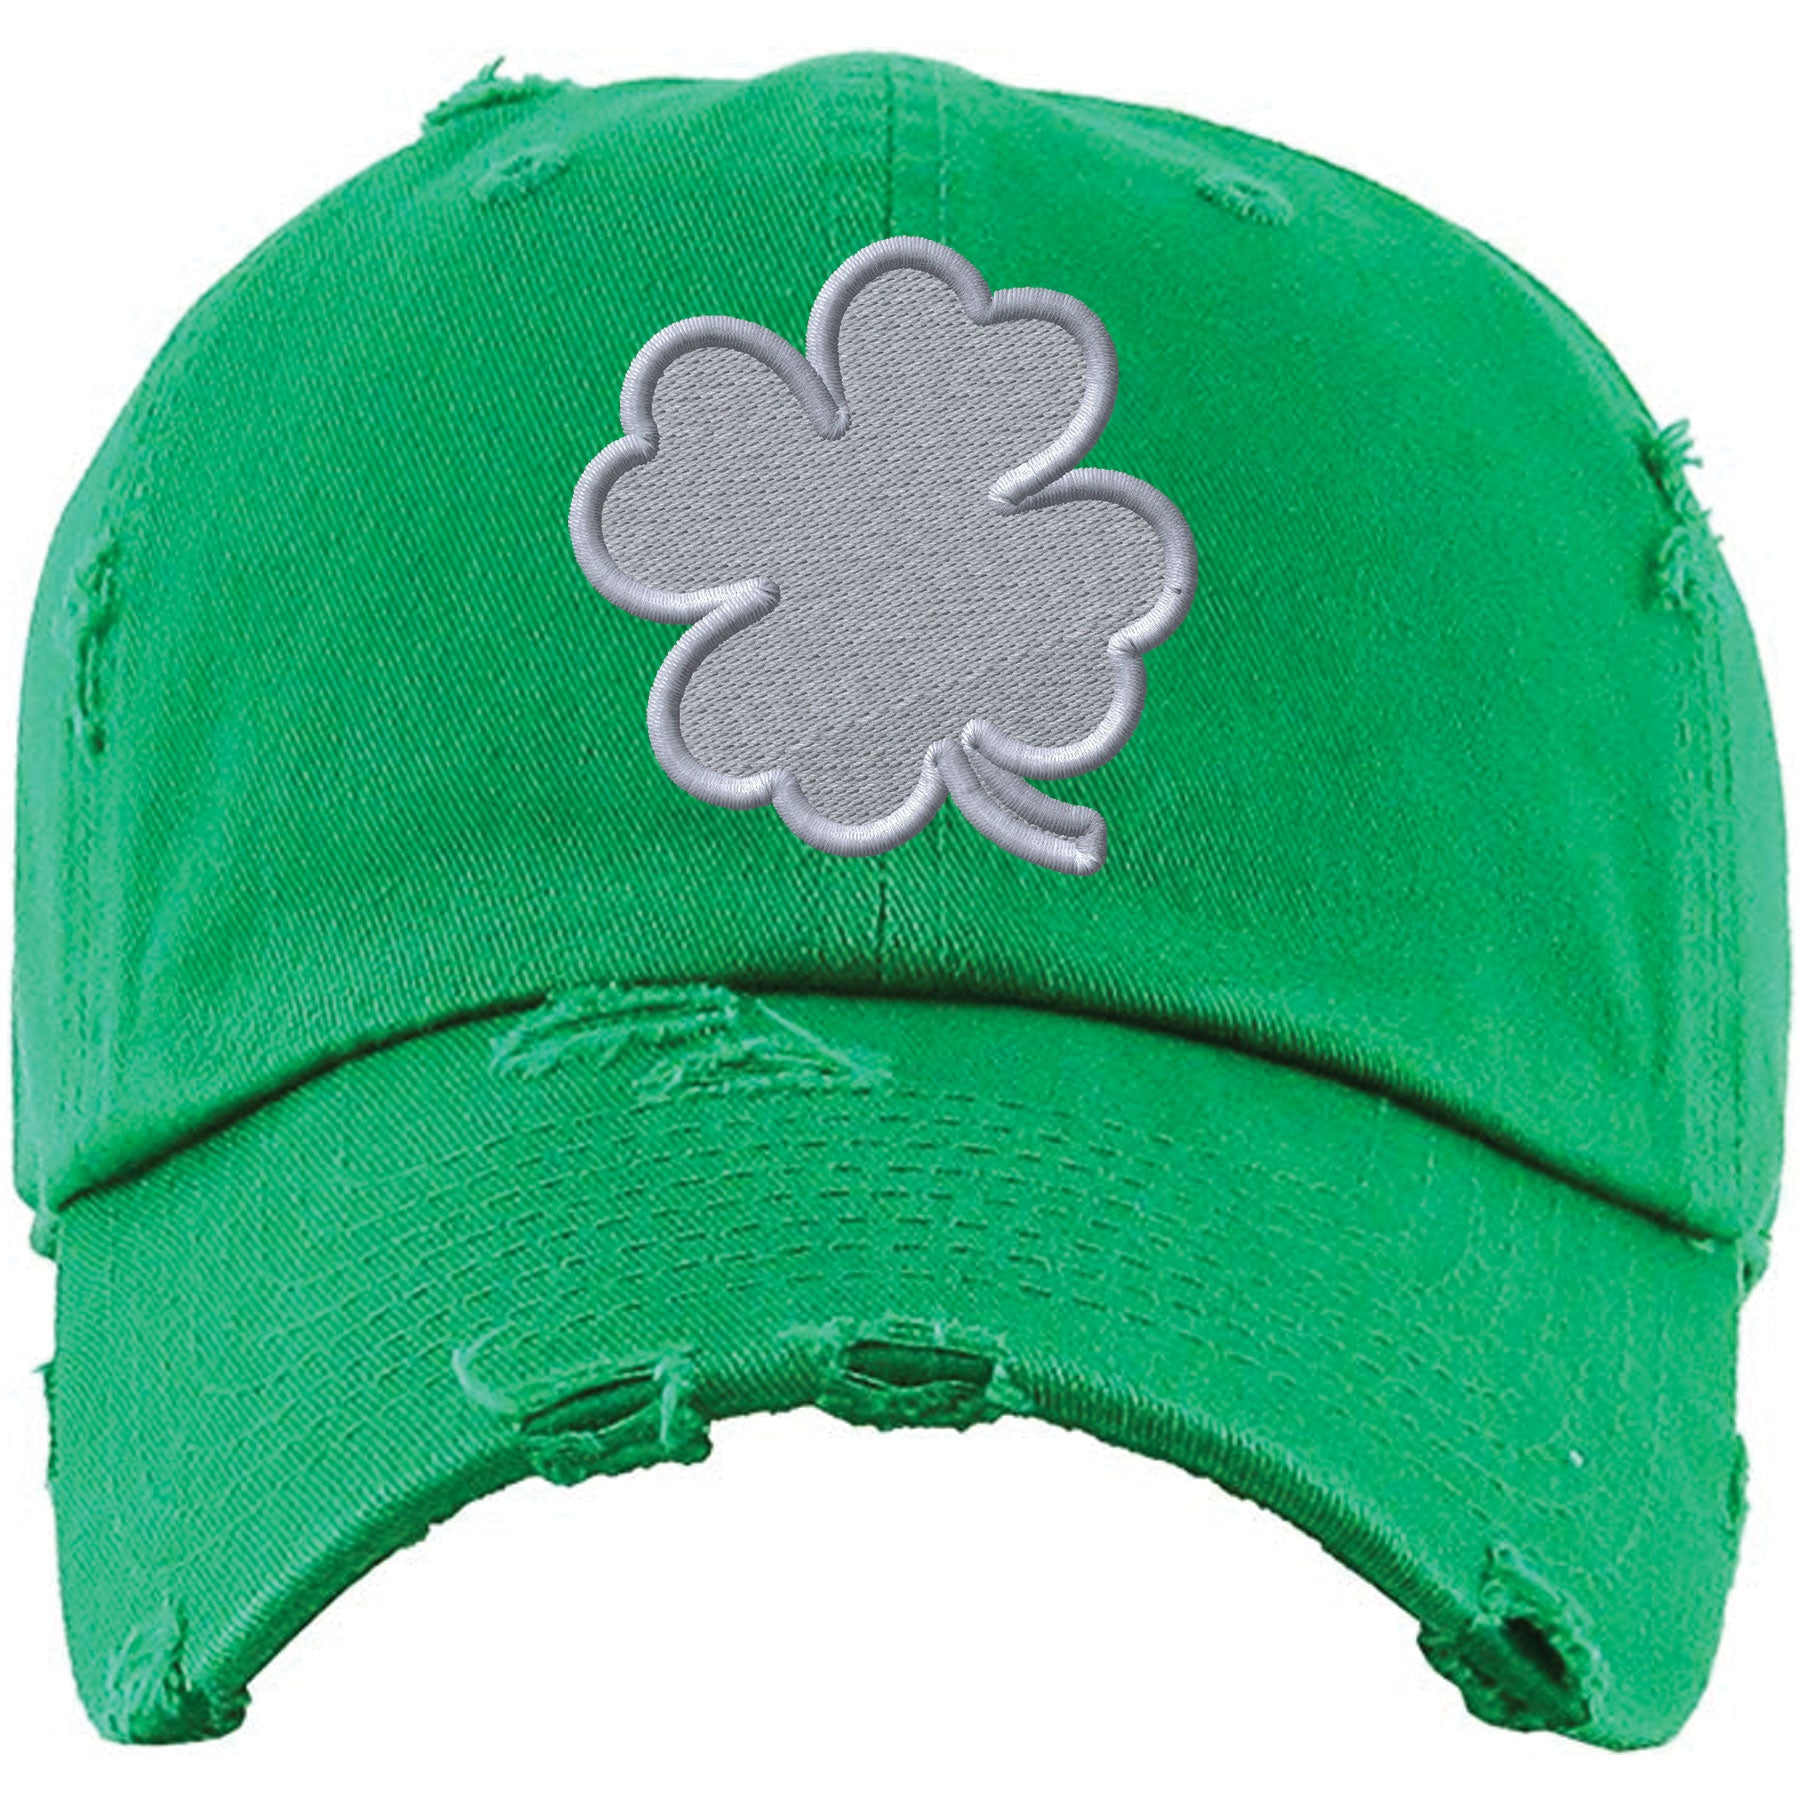 ffc3fdd72d4 Look great with funny St. Patrick s Day clothing and St. Patrick s Day  accessories from